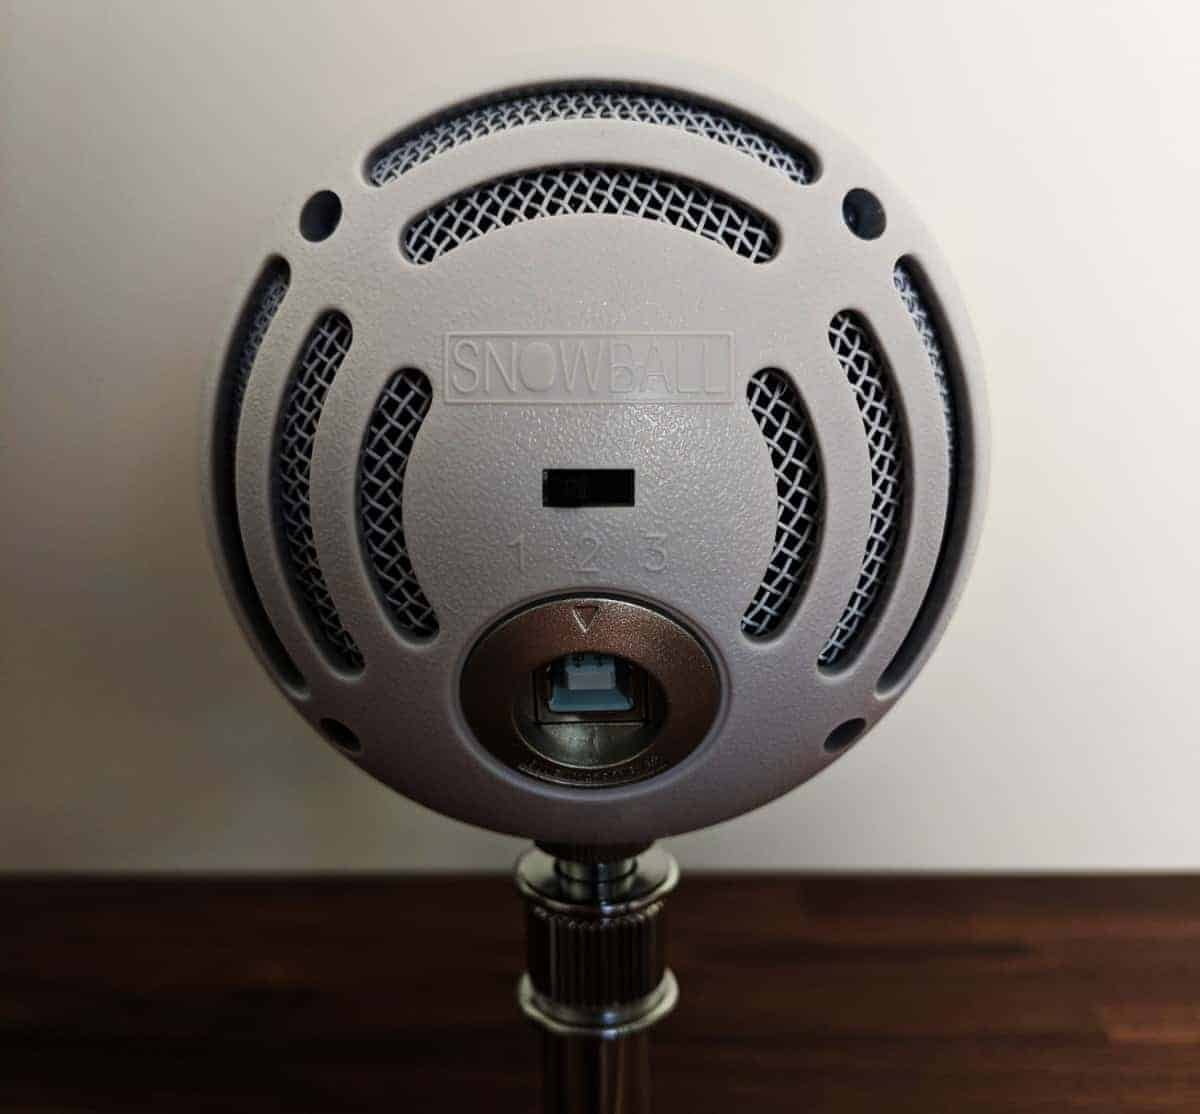 Blue-Snowball-Photos-05 Blue Snowball Review